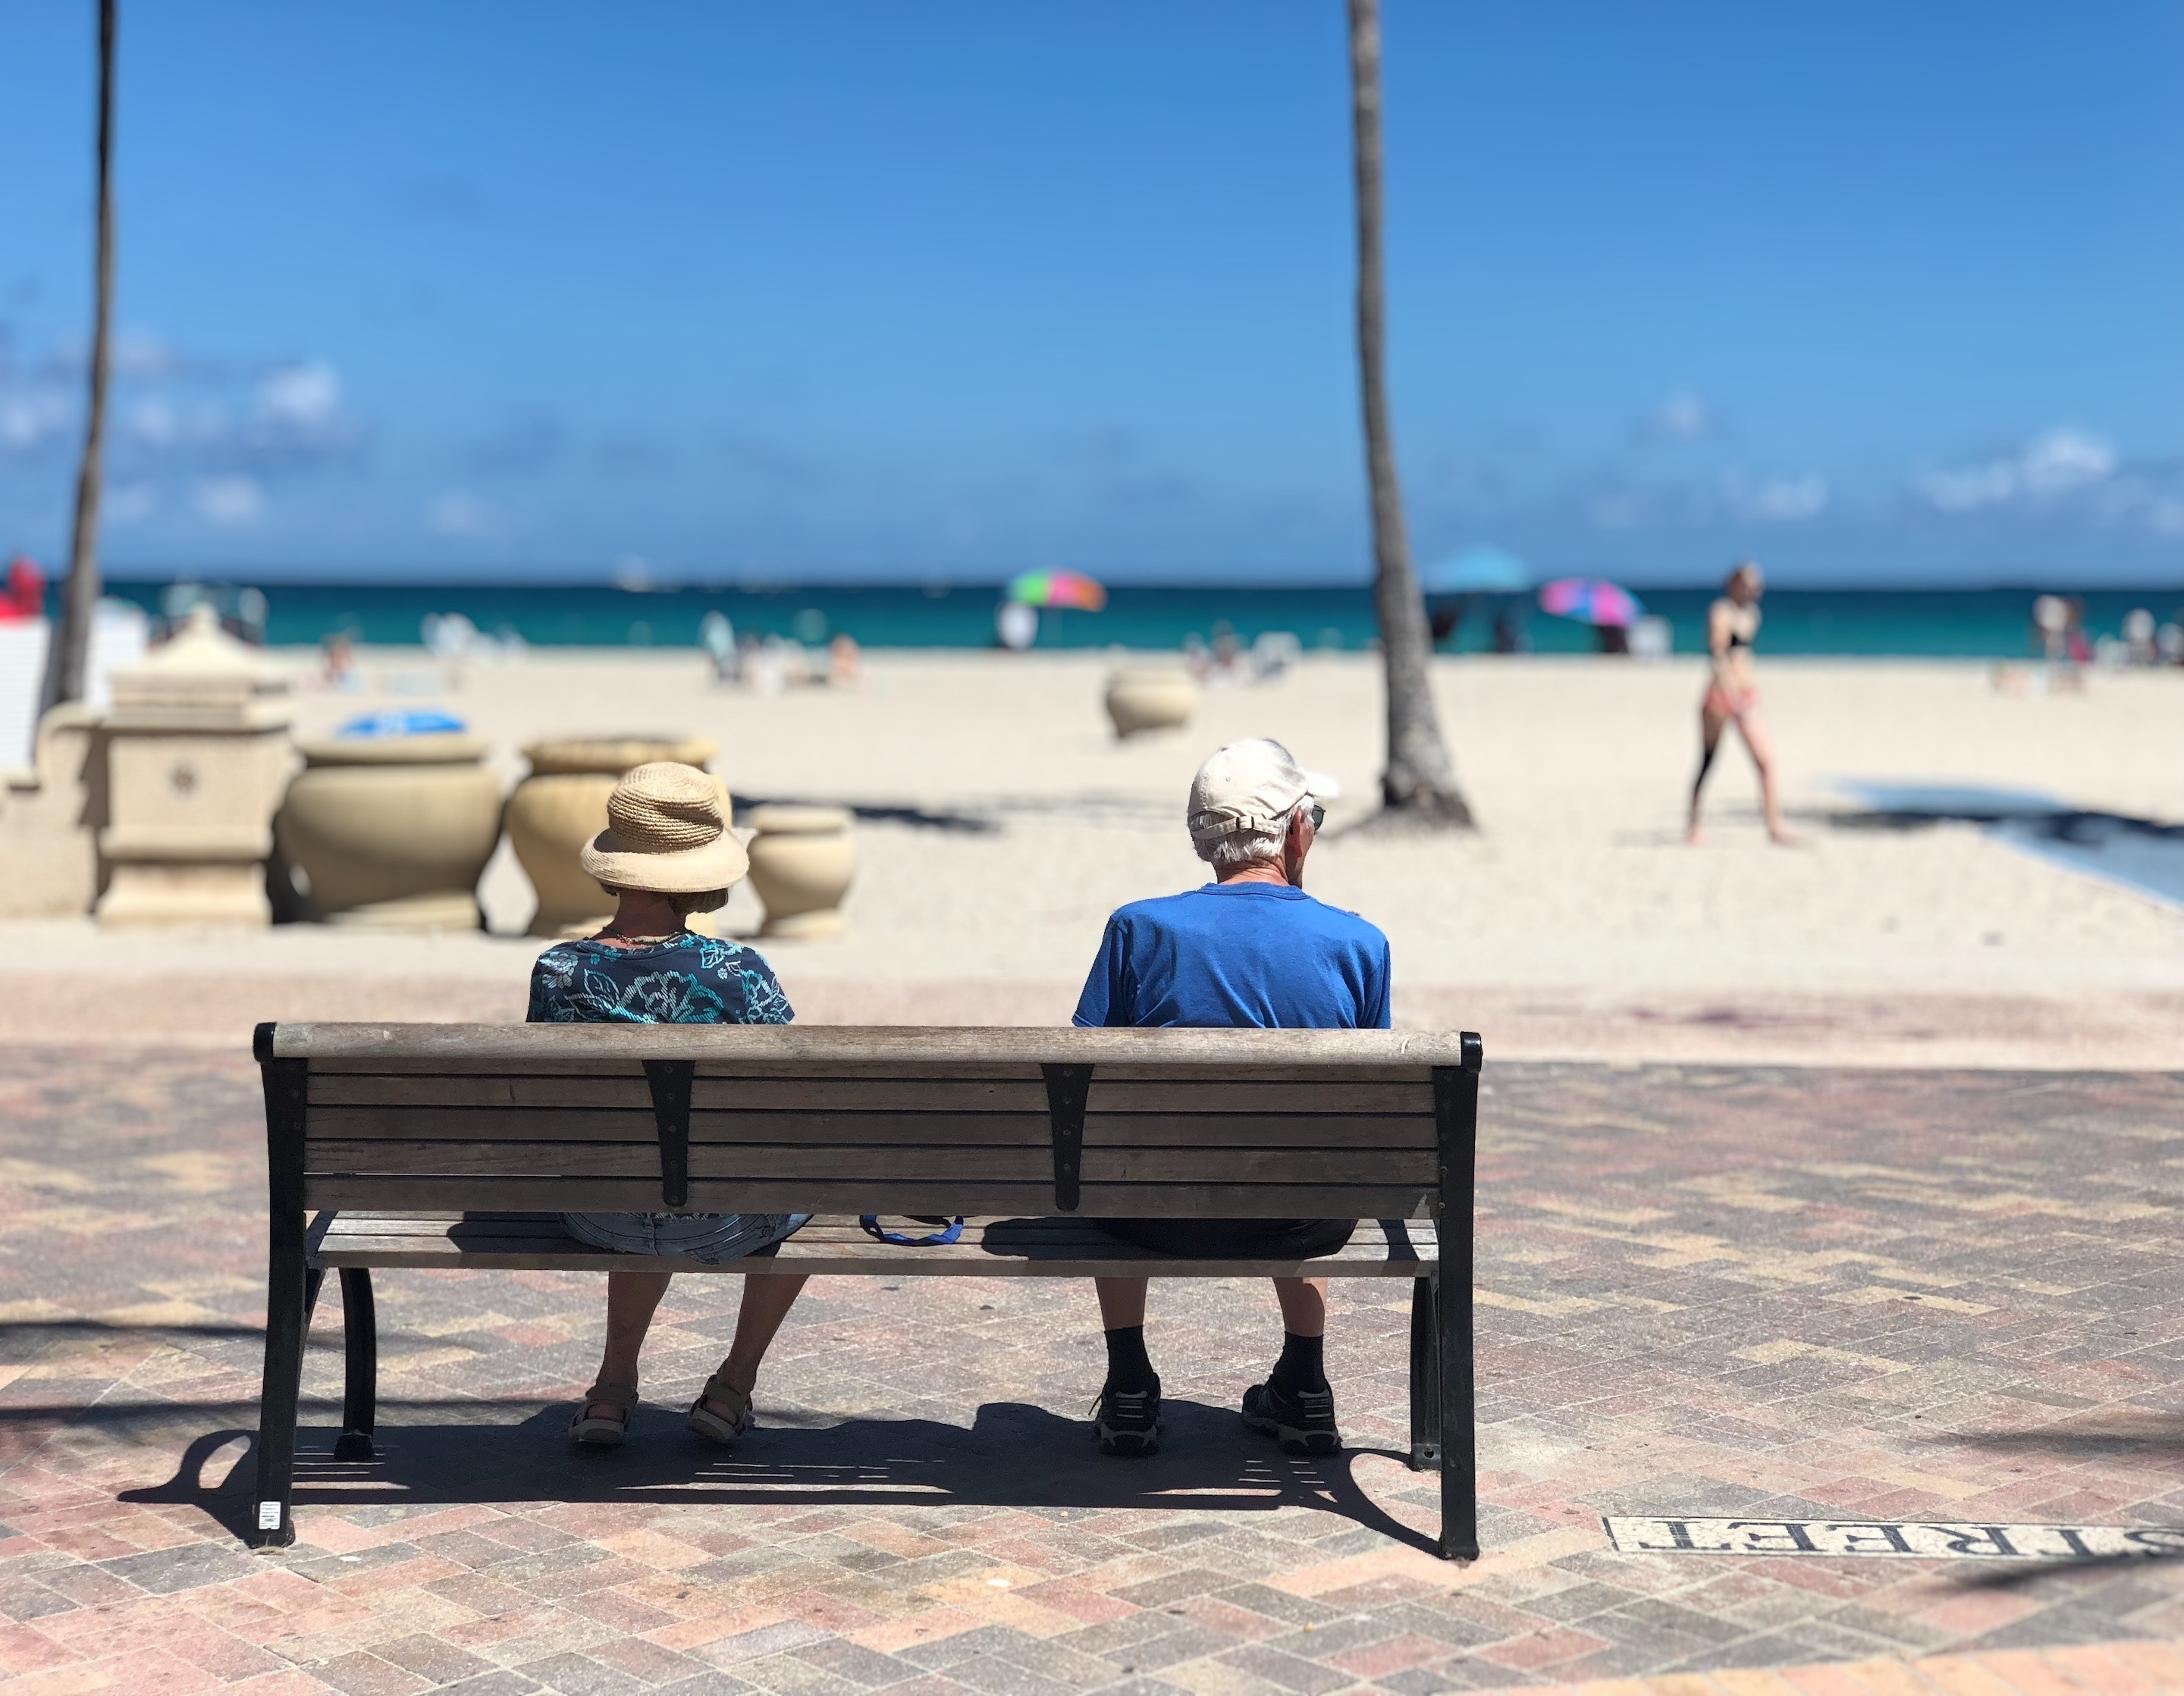 Older white couple sits on a bench on a beach sidewalk looking at the passerby